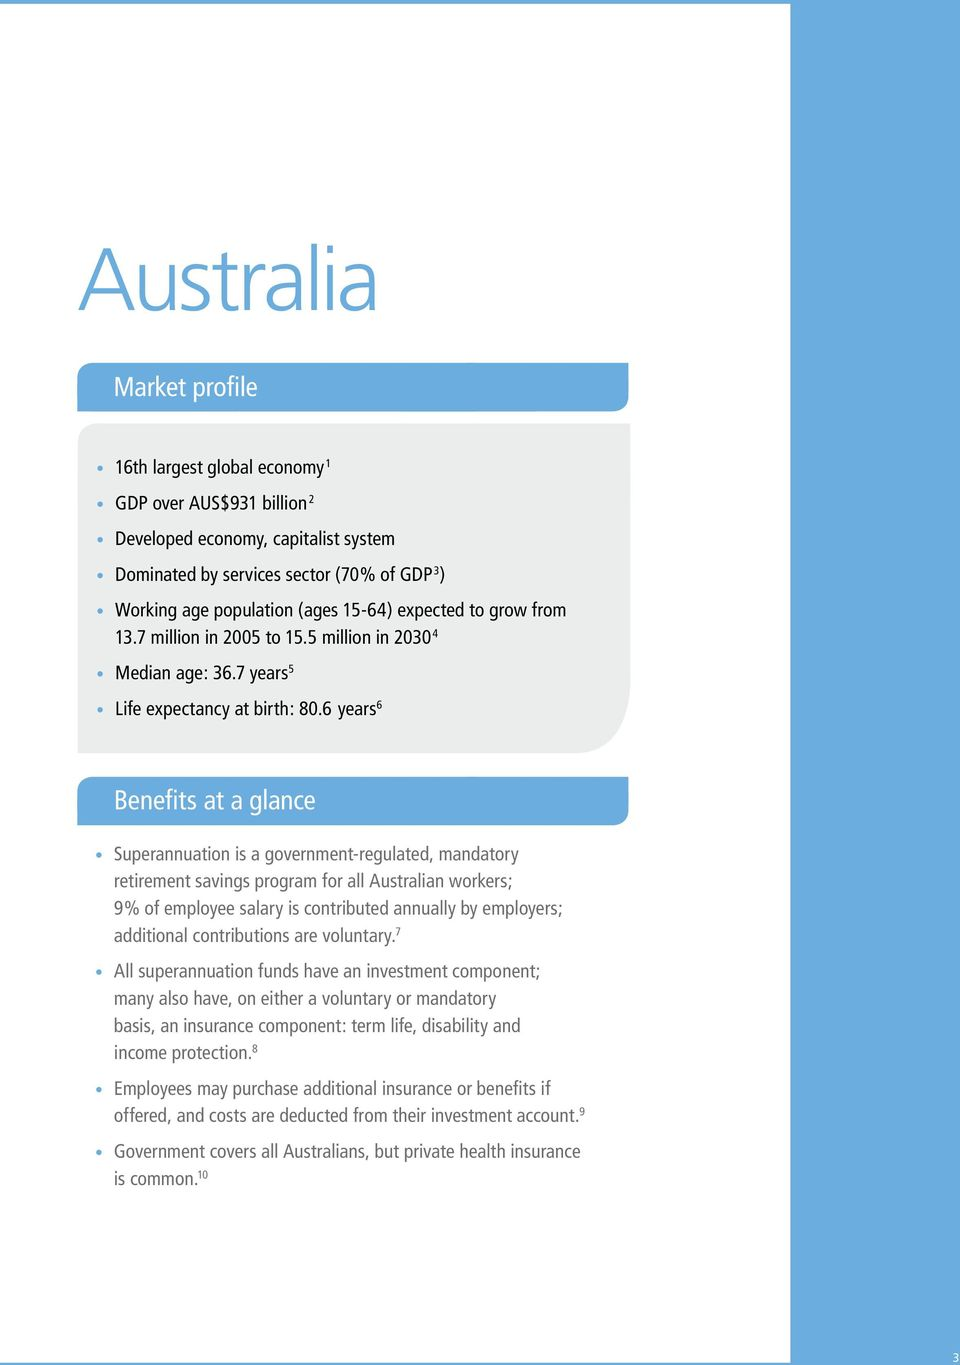 6 years 6 Benefits at a glance Superannuation is a government-regulated, mandatory retirement savings program for all Australian workers; 9% of employee salary is contributed annually by employers;